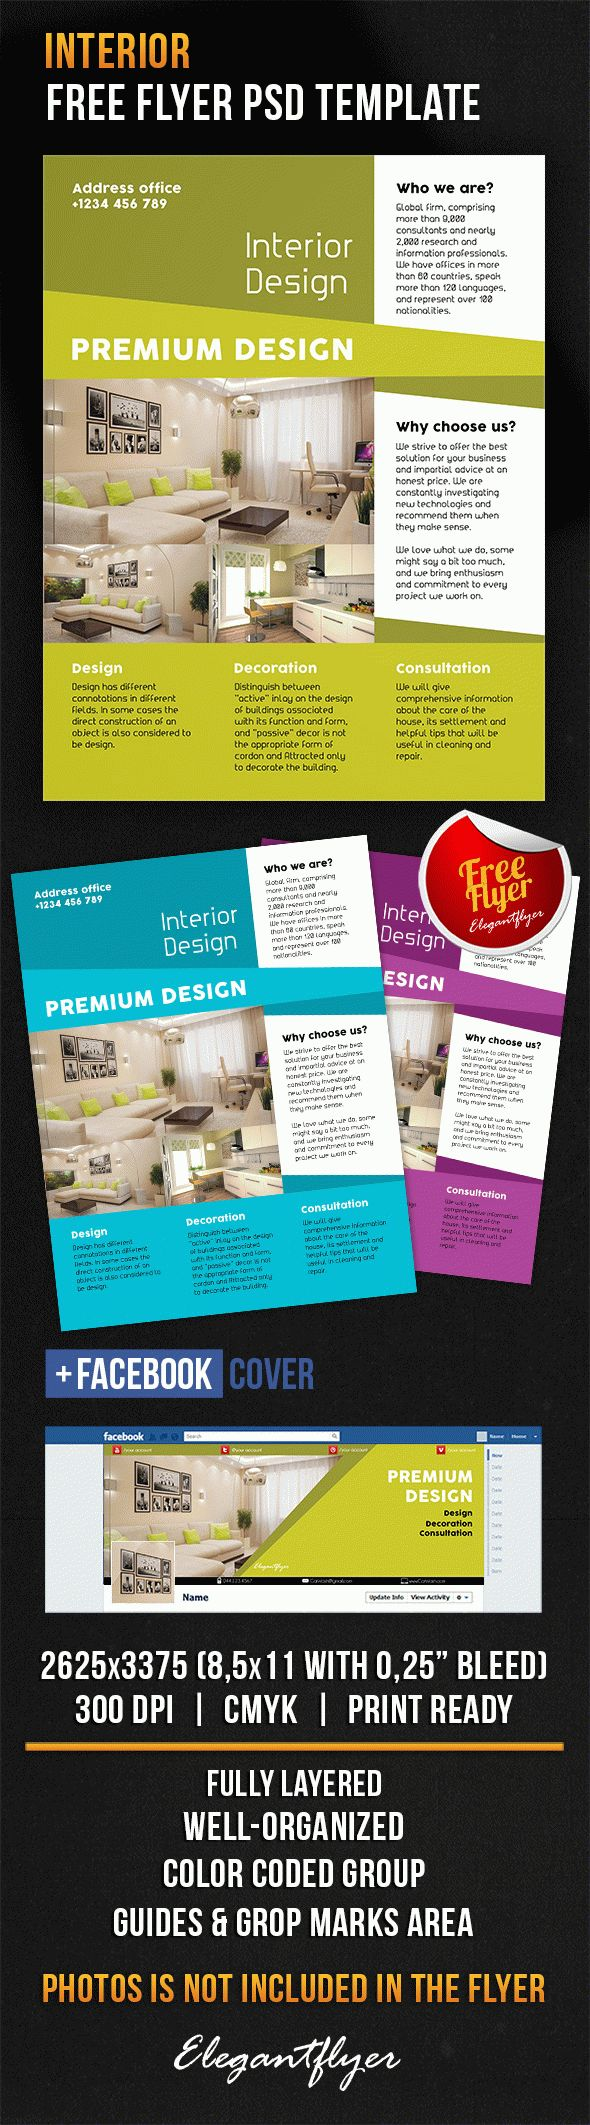 Interior – Free Flyer PSD Template + Facebook Cover